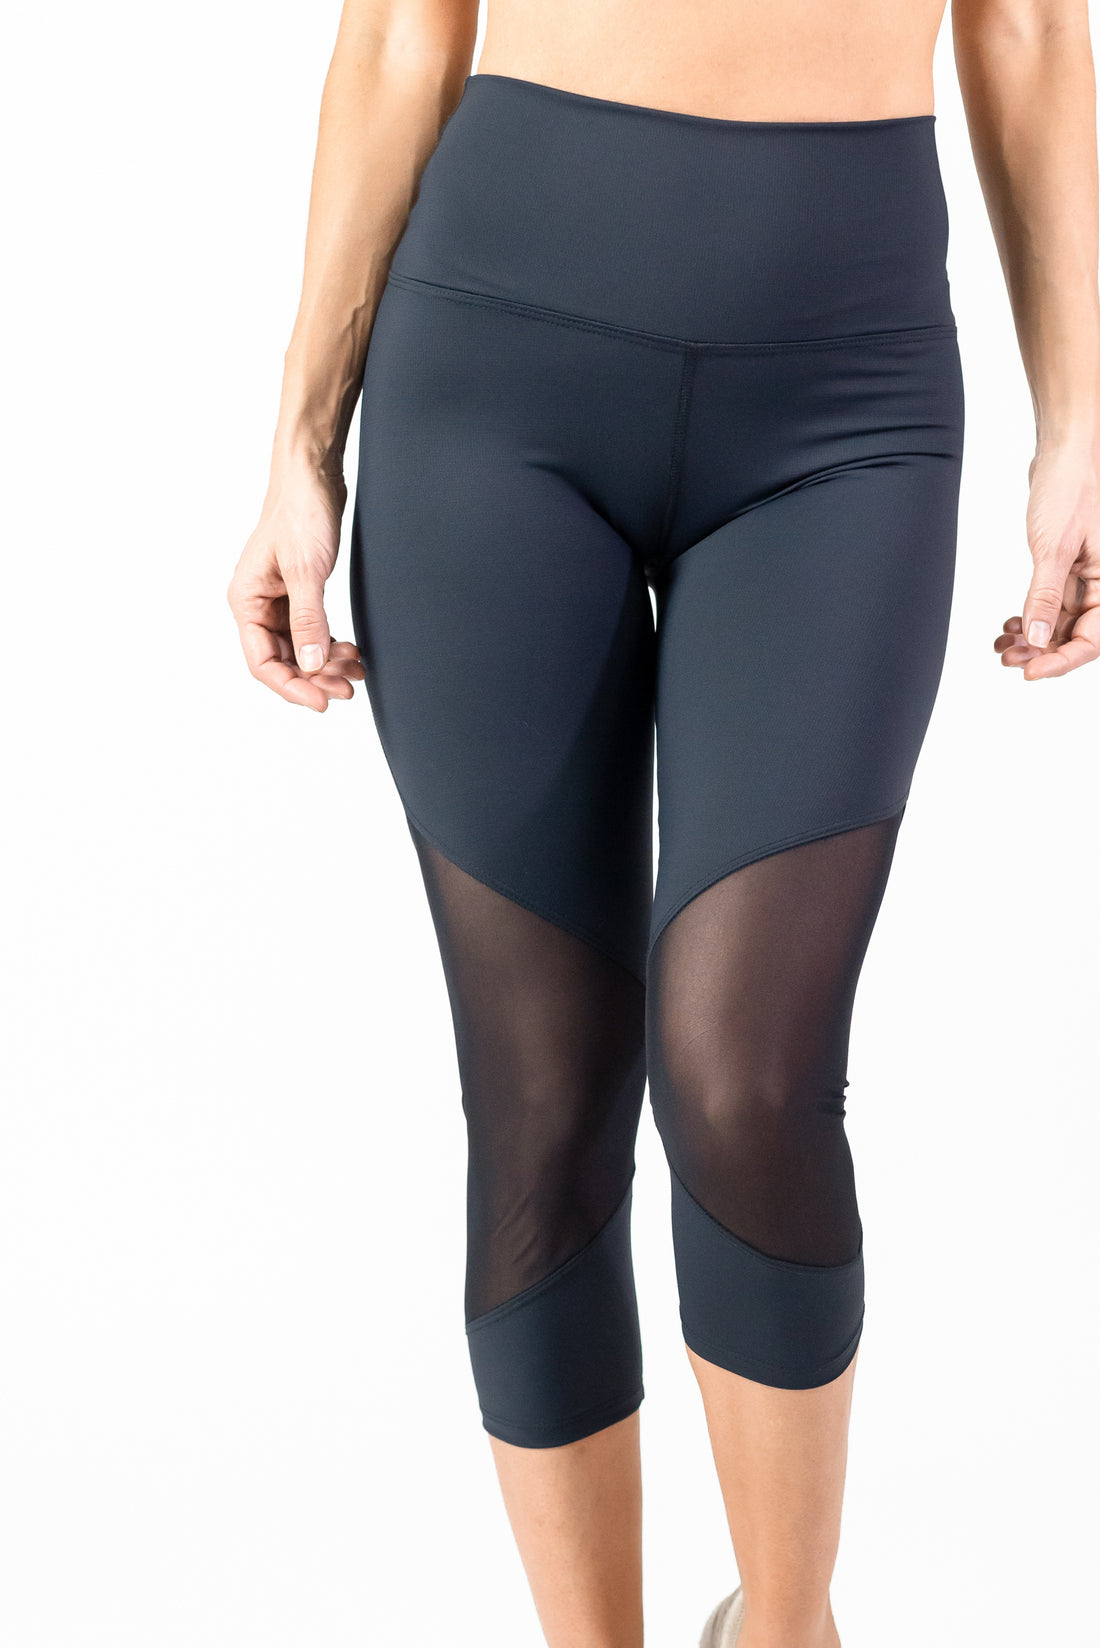 Compression In Motion Tech Legging 7/8 - High Waisted - Mesh - Final Sale